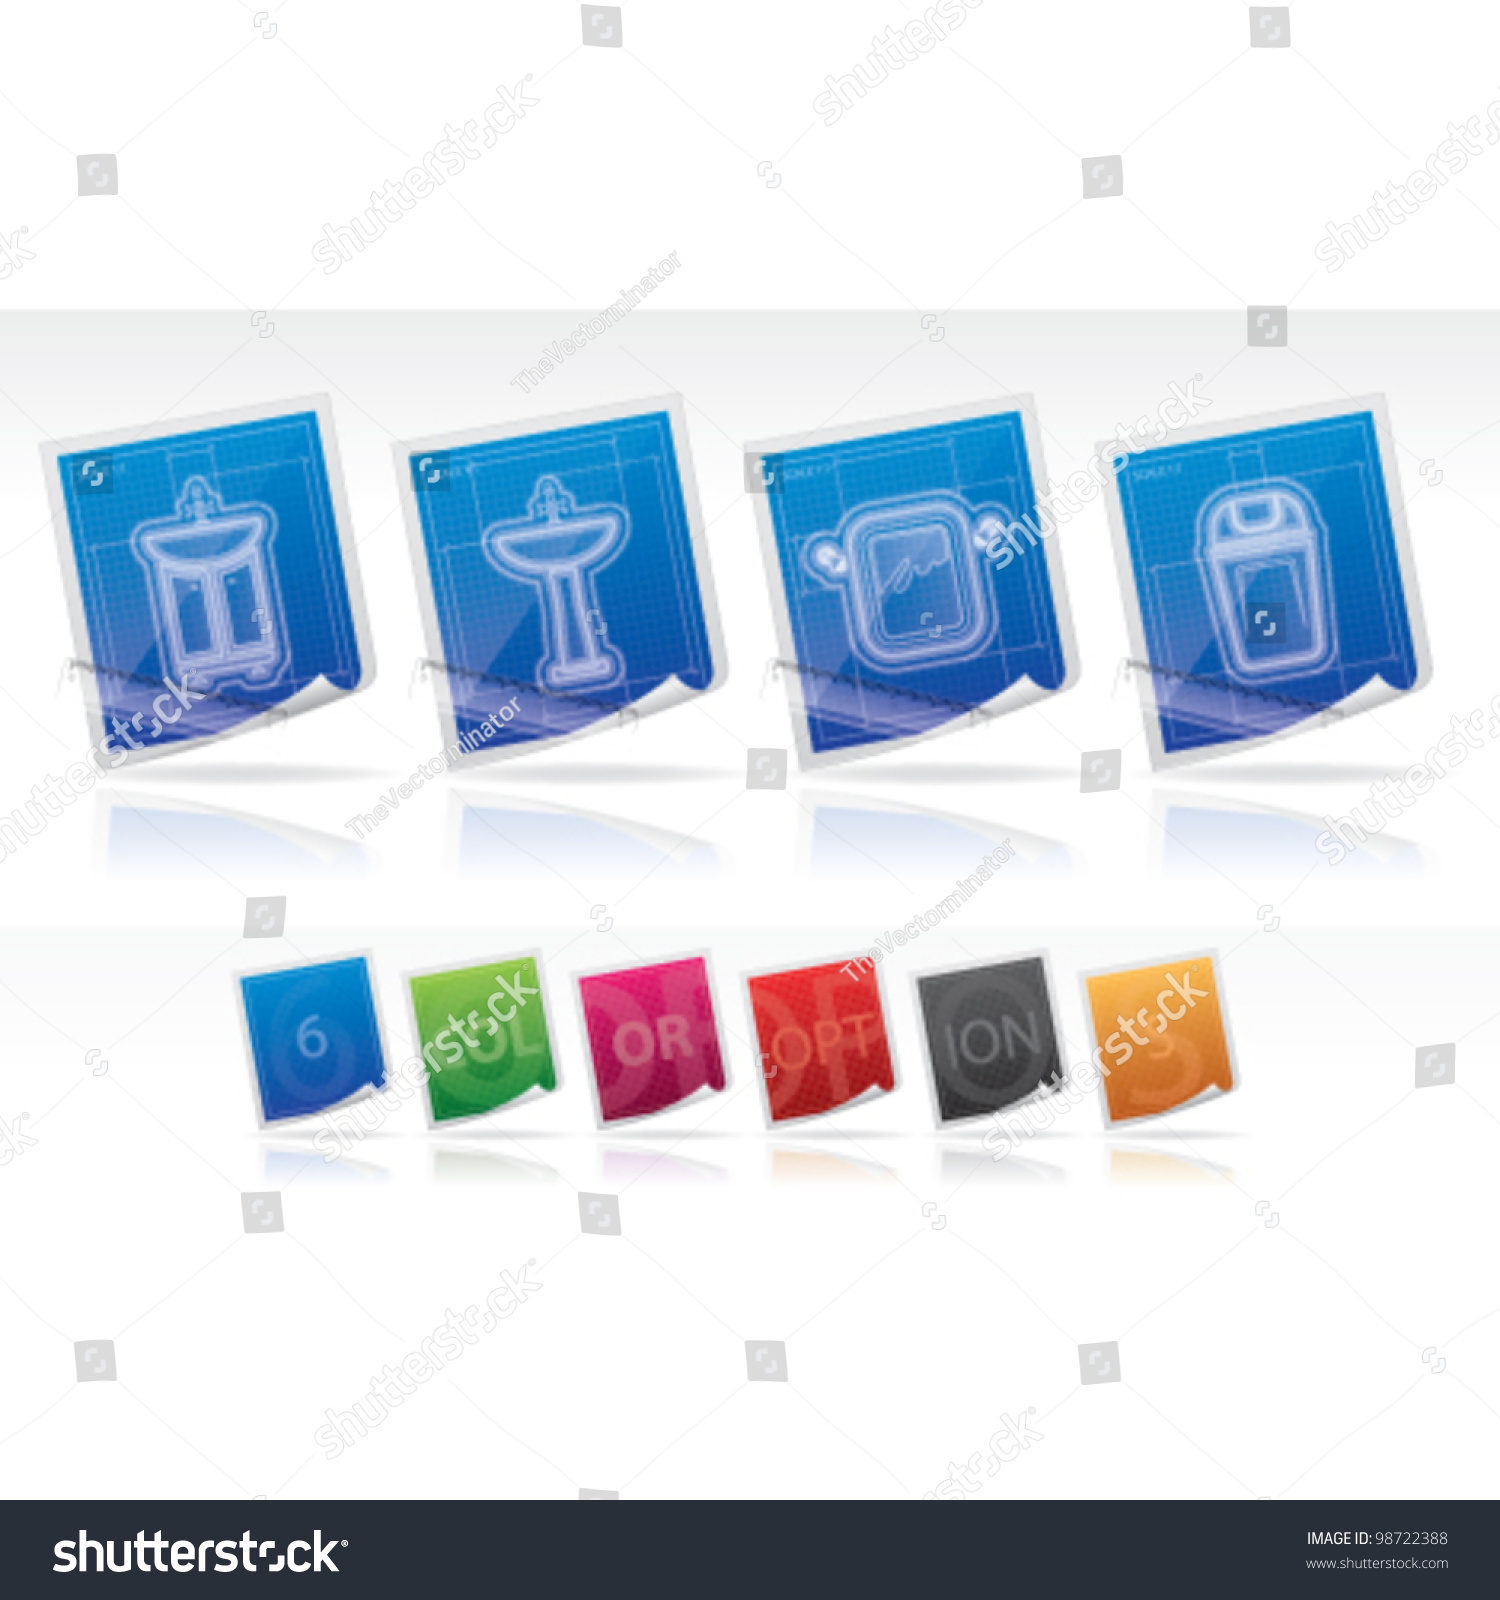 Bathroom appliances stock vector illustration 98722388 for Restroom appliances